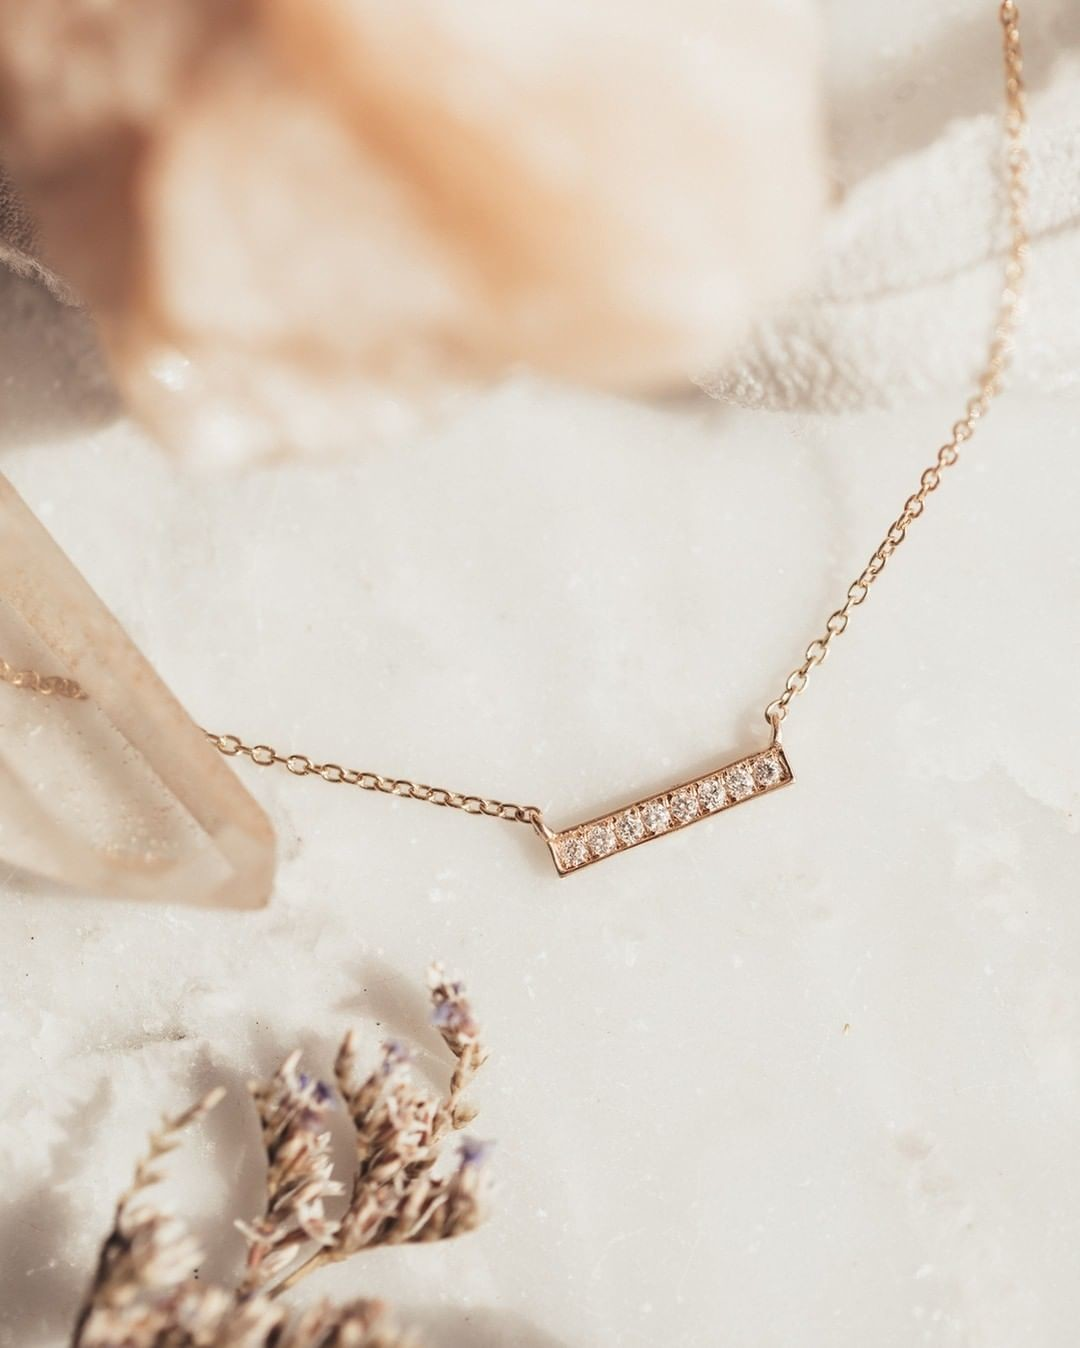 Raise the bar with our dainty rose gold & diamond necklace.